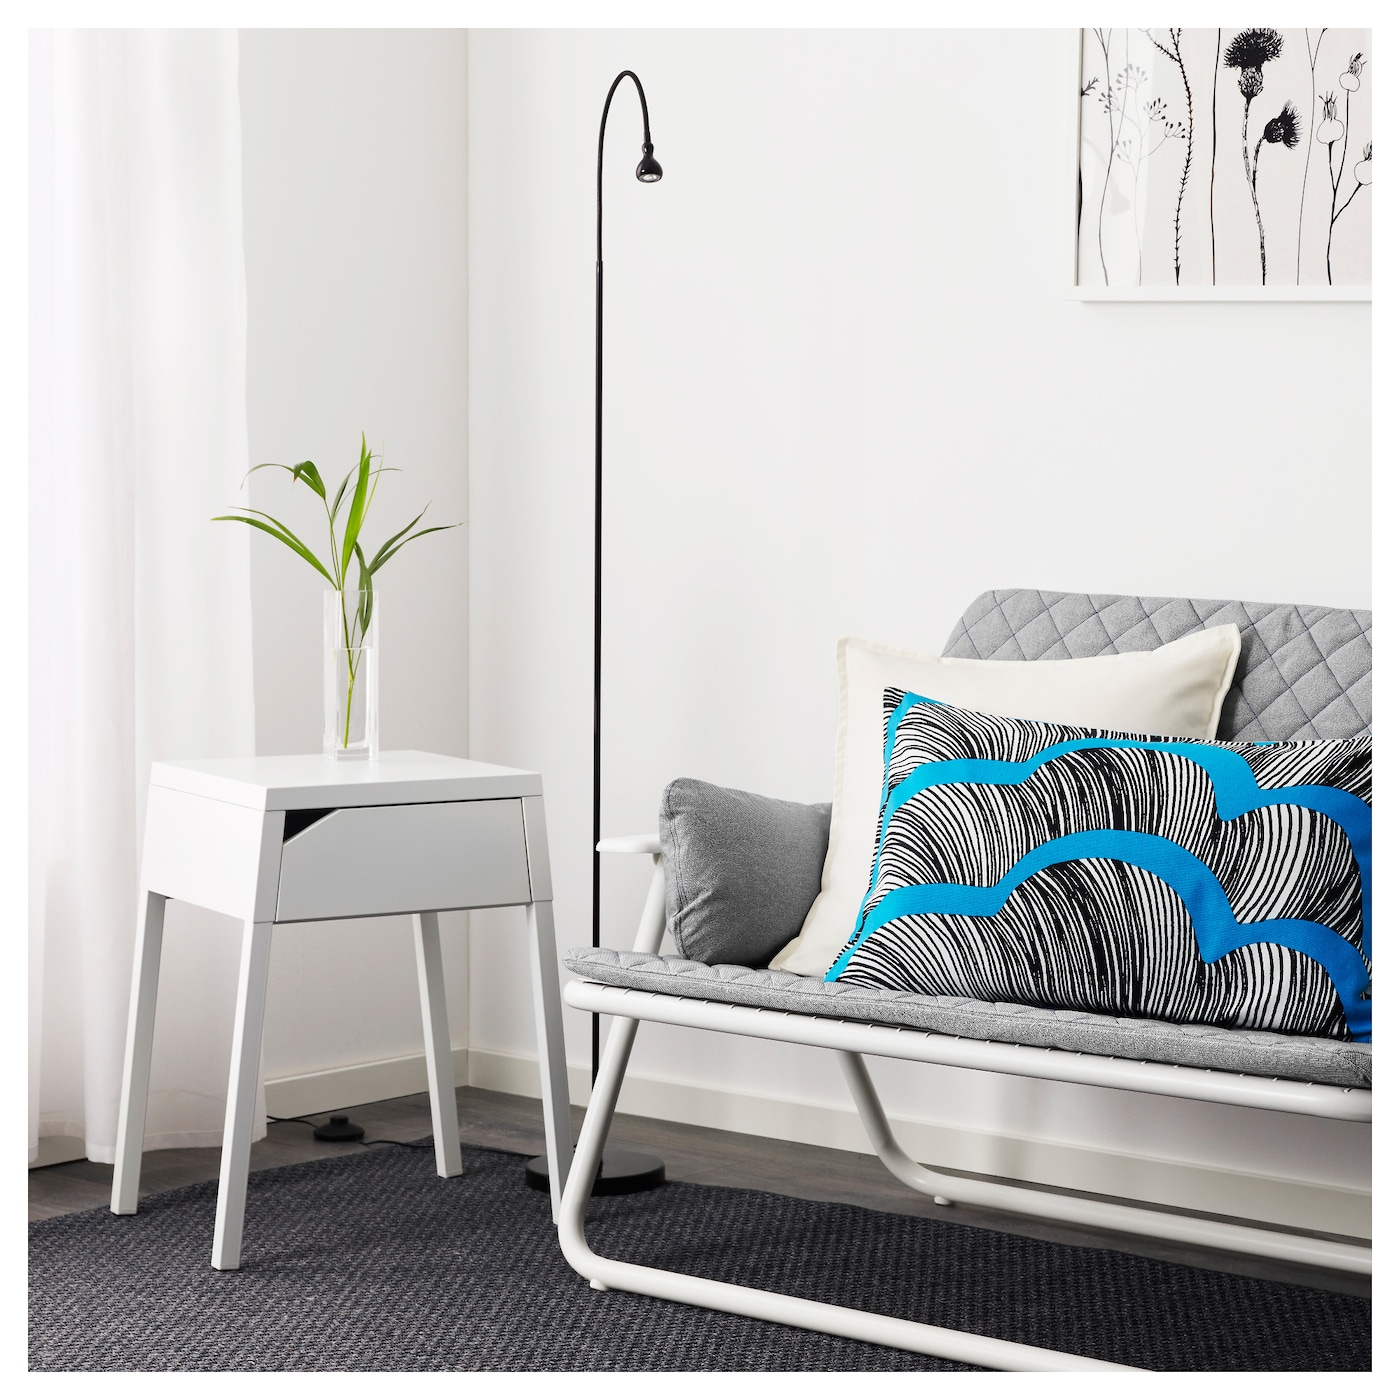 IKEA IKEA PS 2017 2-seat sofa Easy to fold up and set aside when you need to free up space.